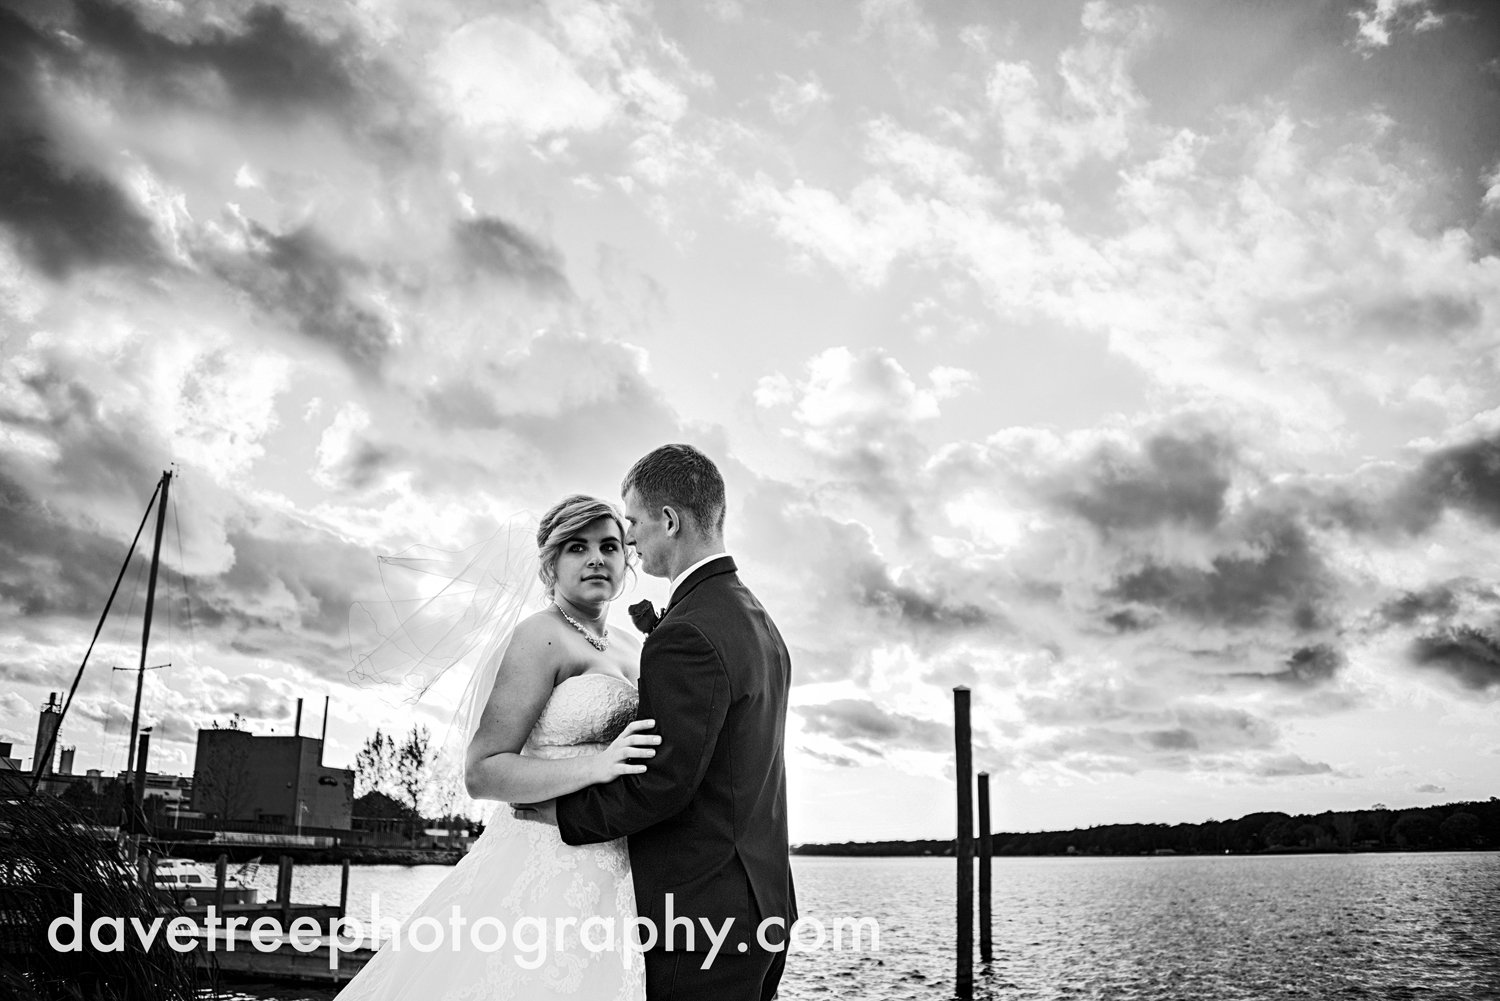 holland_wedding_photographer_28.jpg